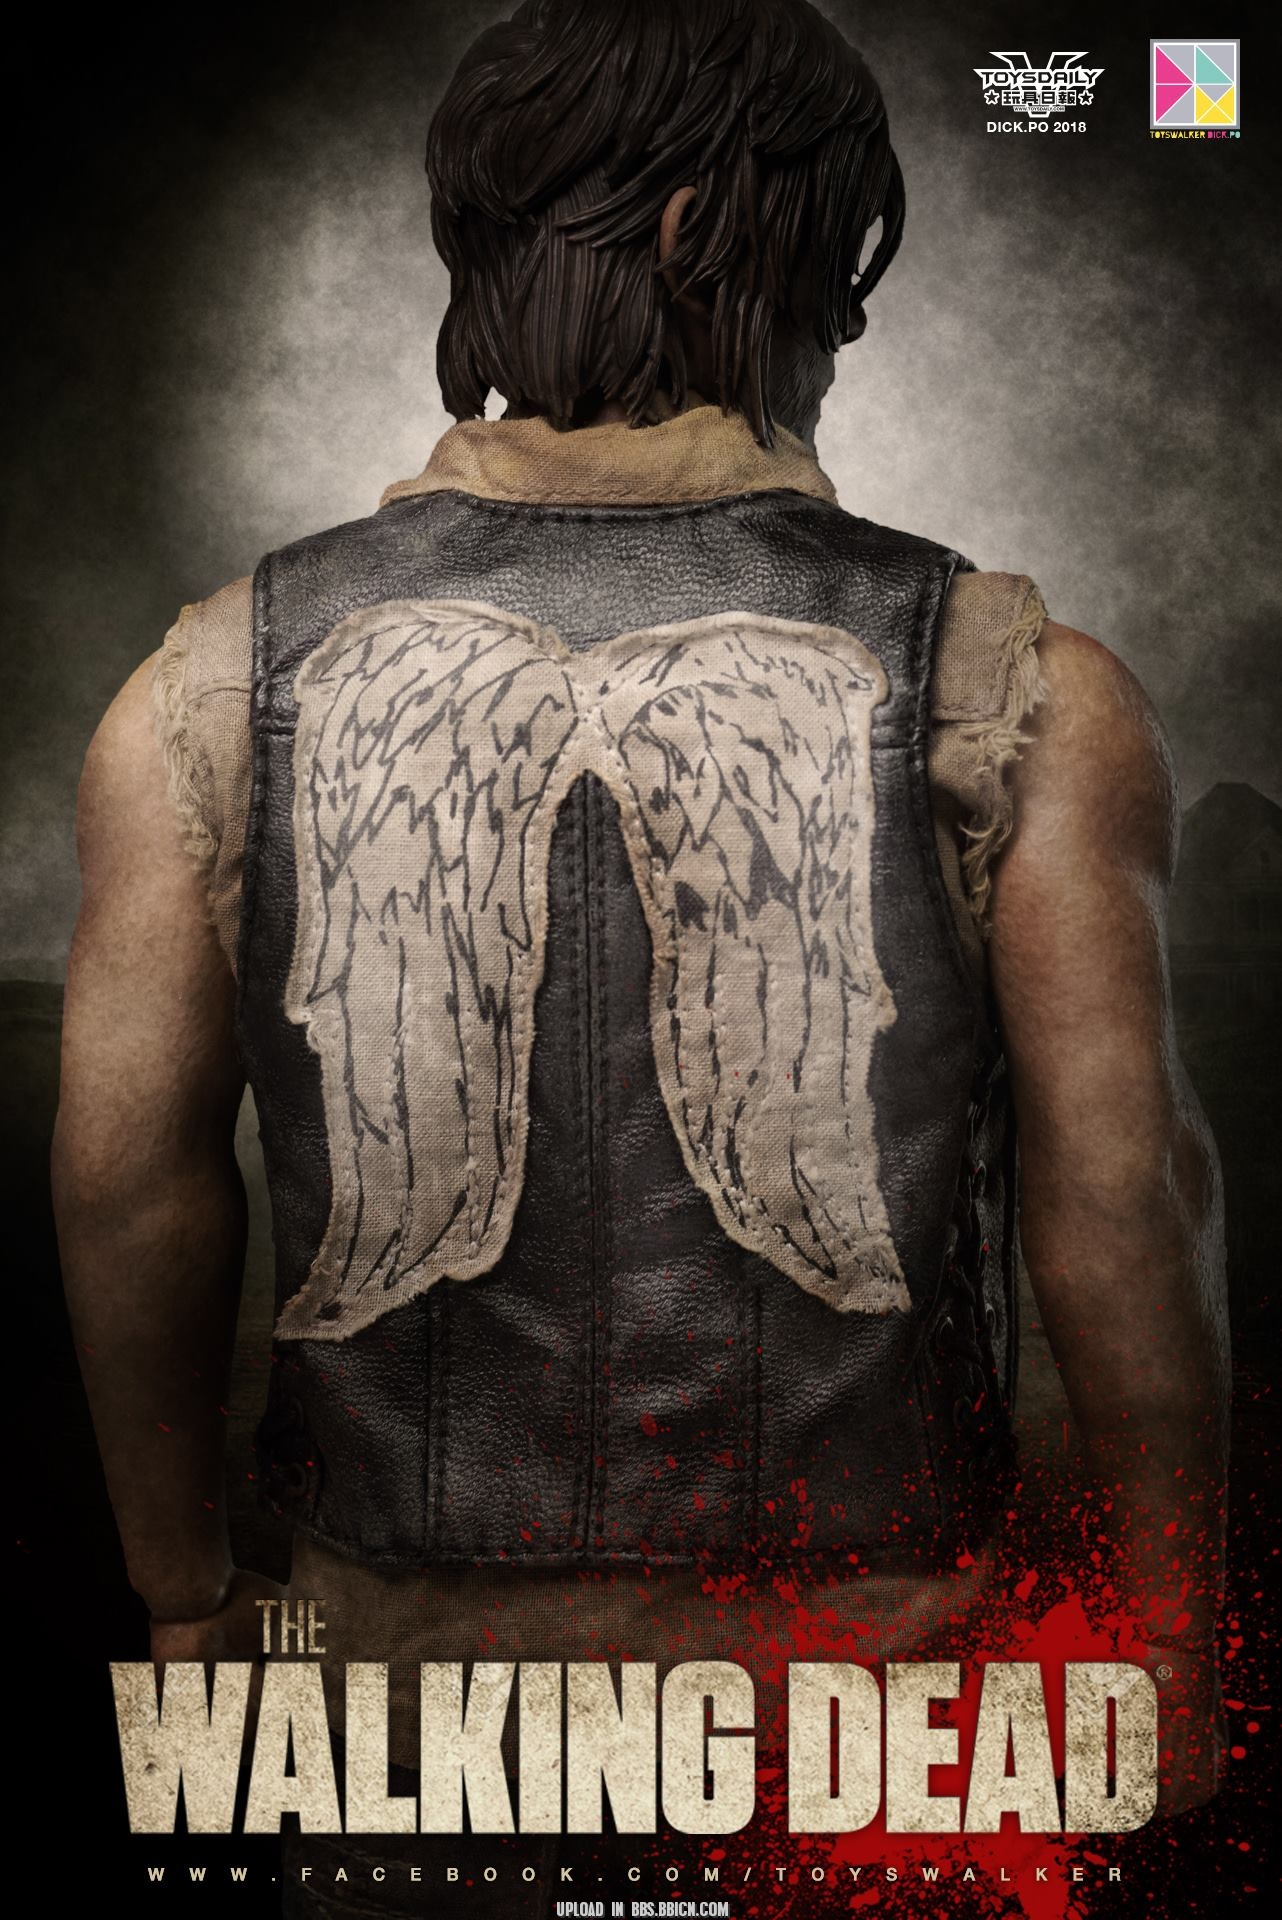 The Walking Dead Daryl Dixon8.jpg